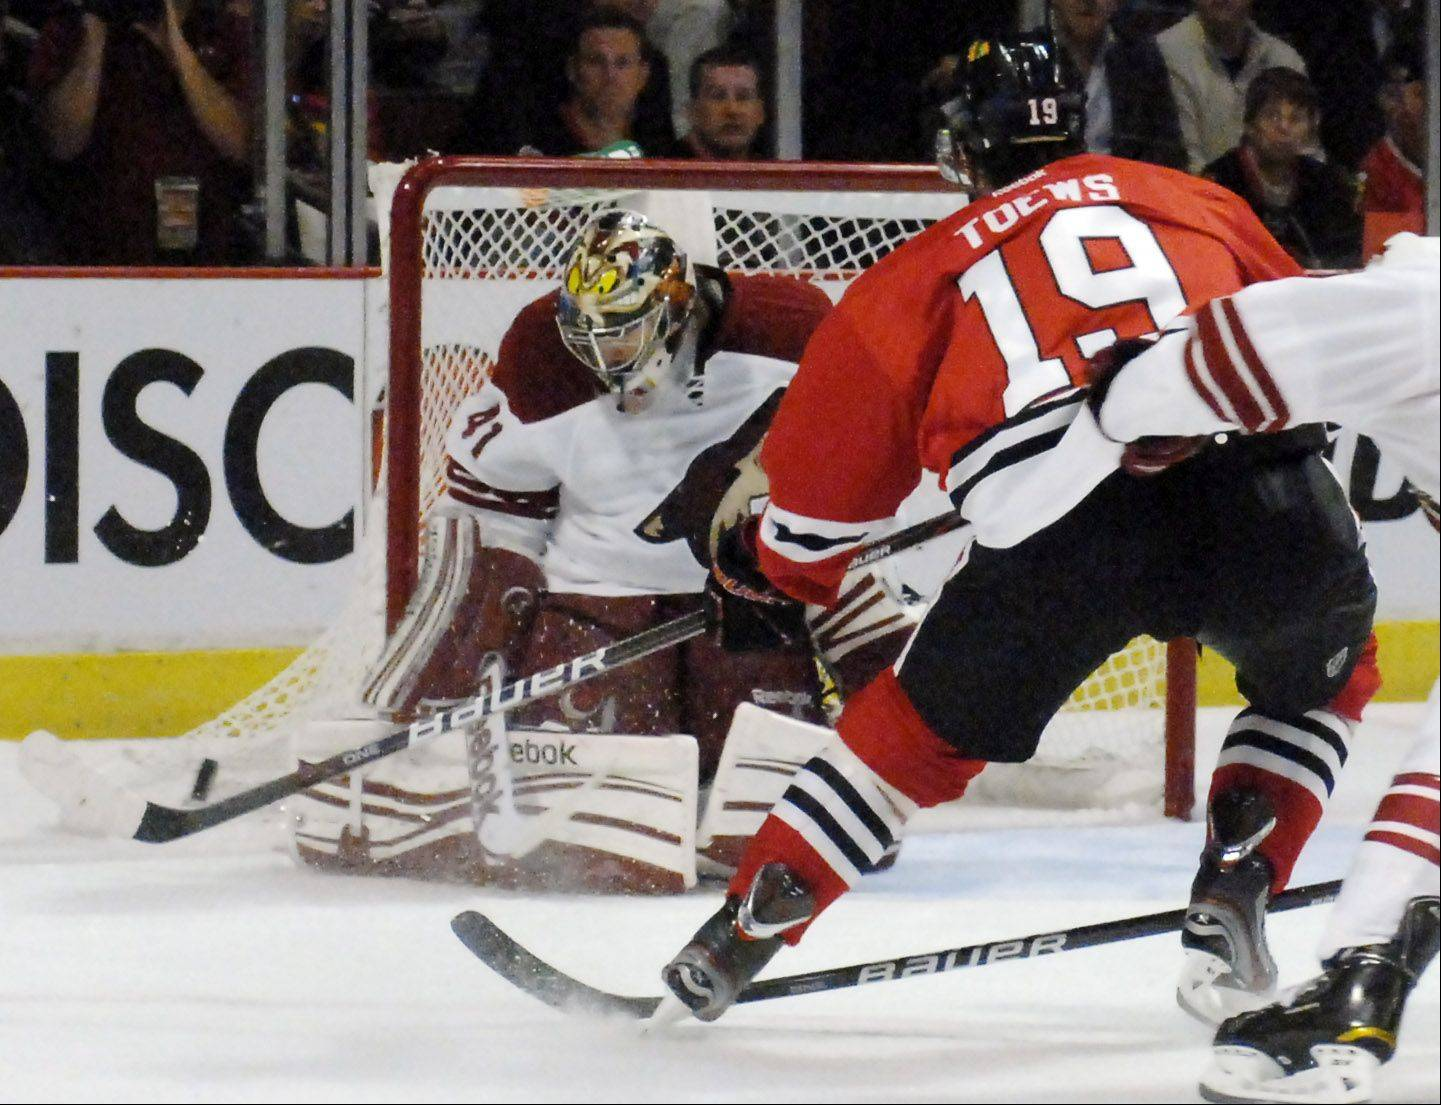 Chicago Blackhawks' center Jonathan Toews' shot is deflected by Phoenix Coyotes goalie Mike Smith in the first period.